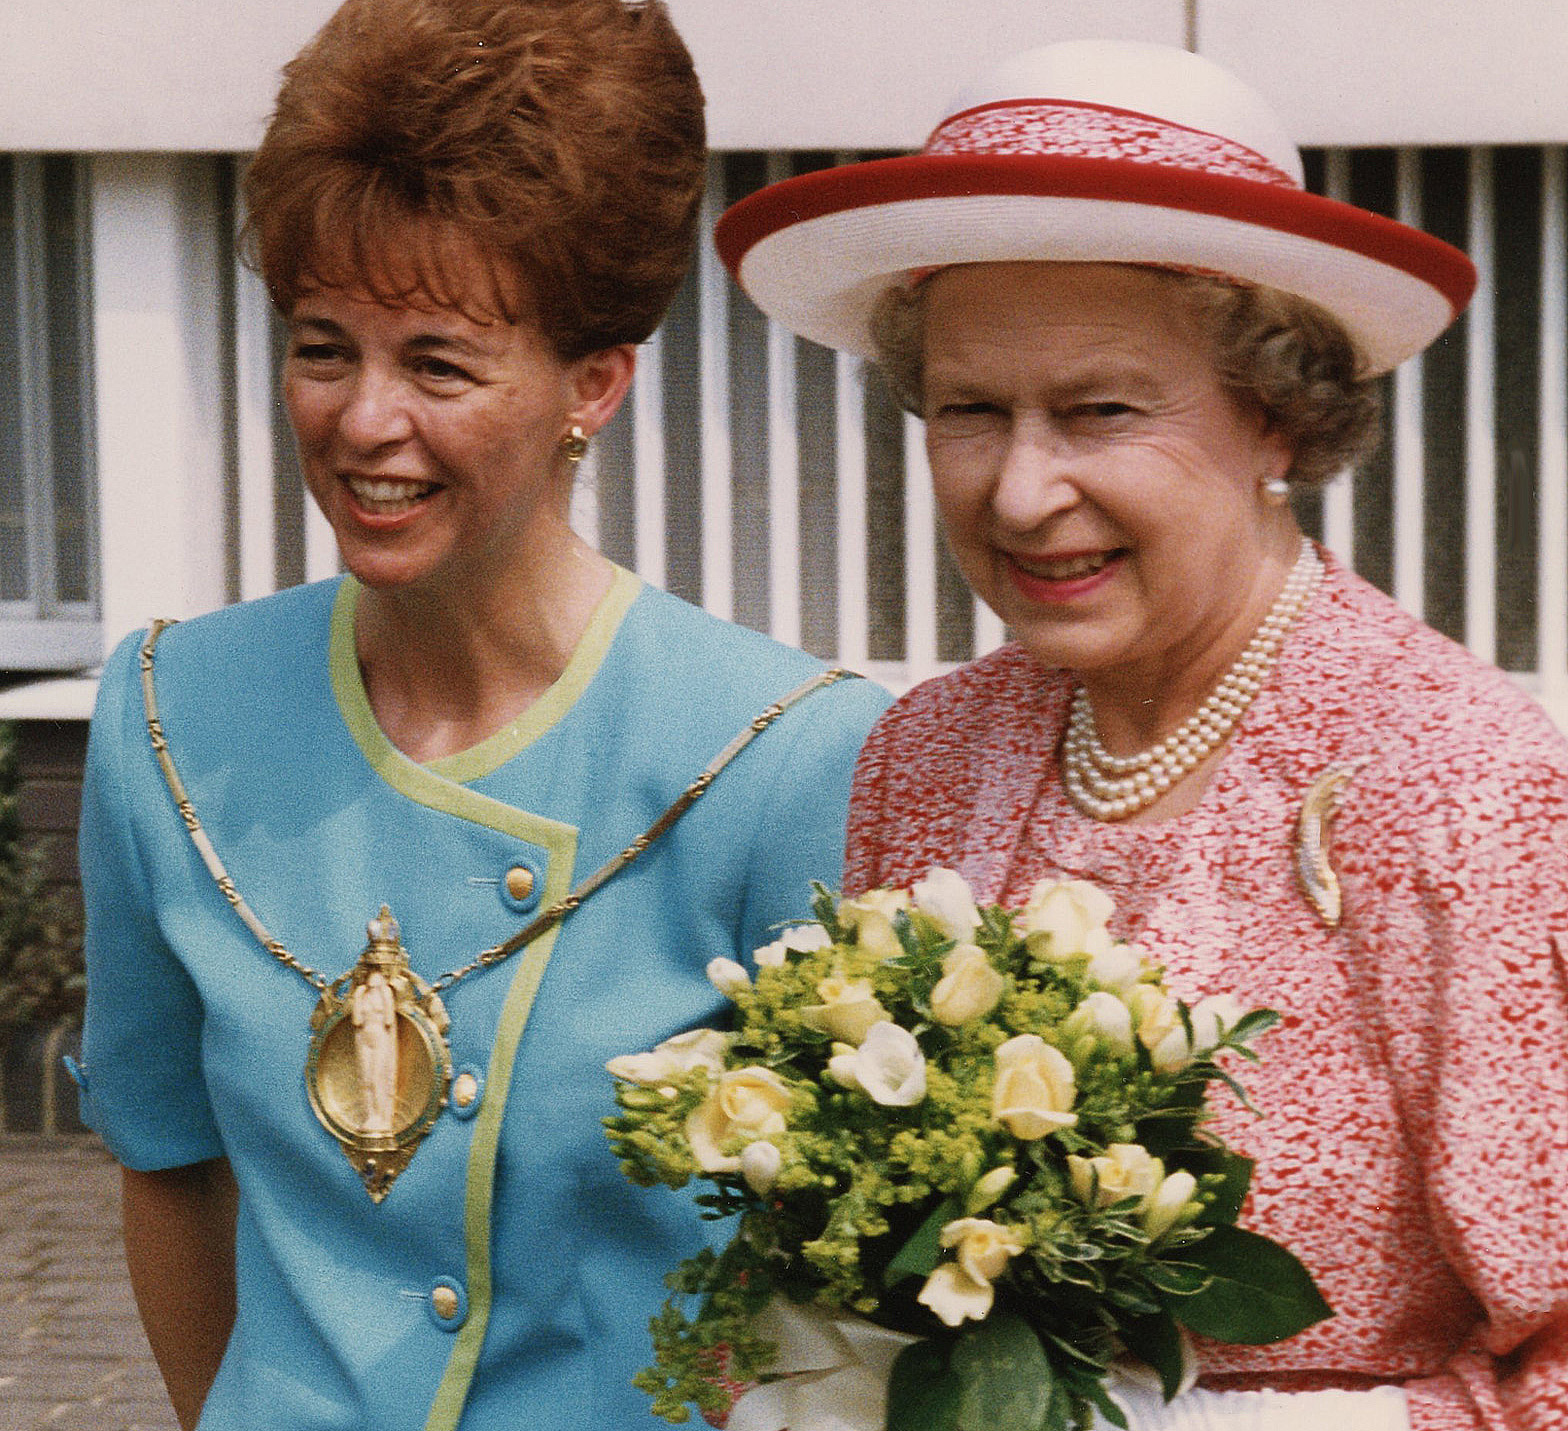 Philomena escorts HM Queen around the Chelsea Harbour Sculpture'93 exhibition, London. Sponsored by P&O